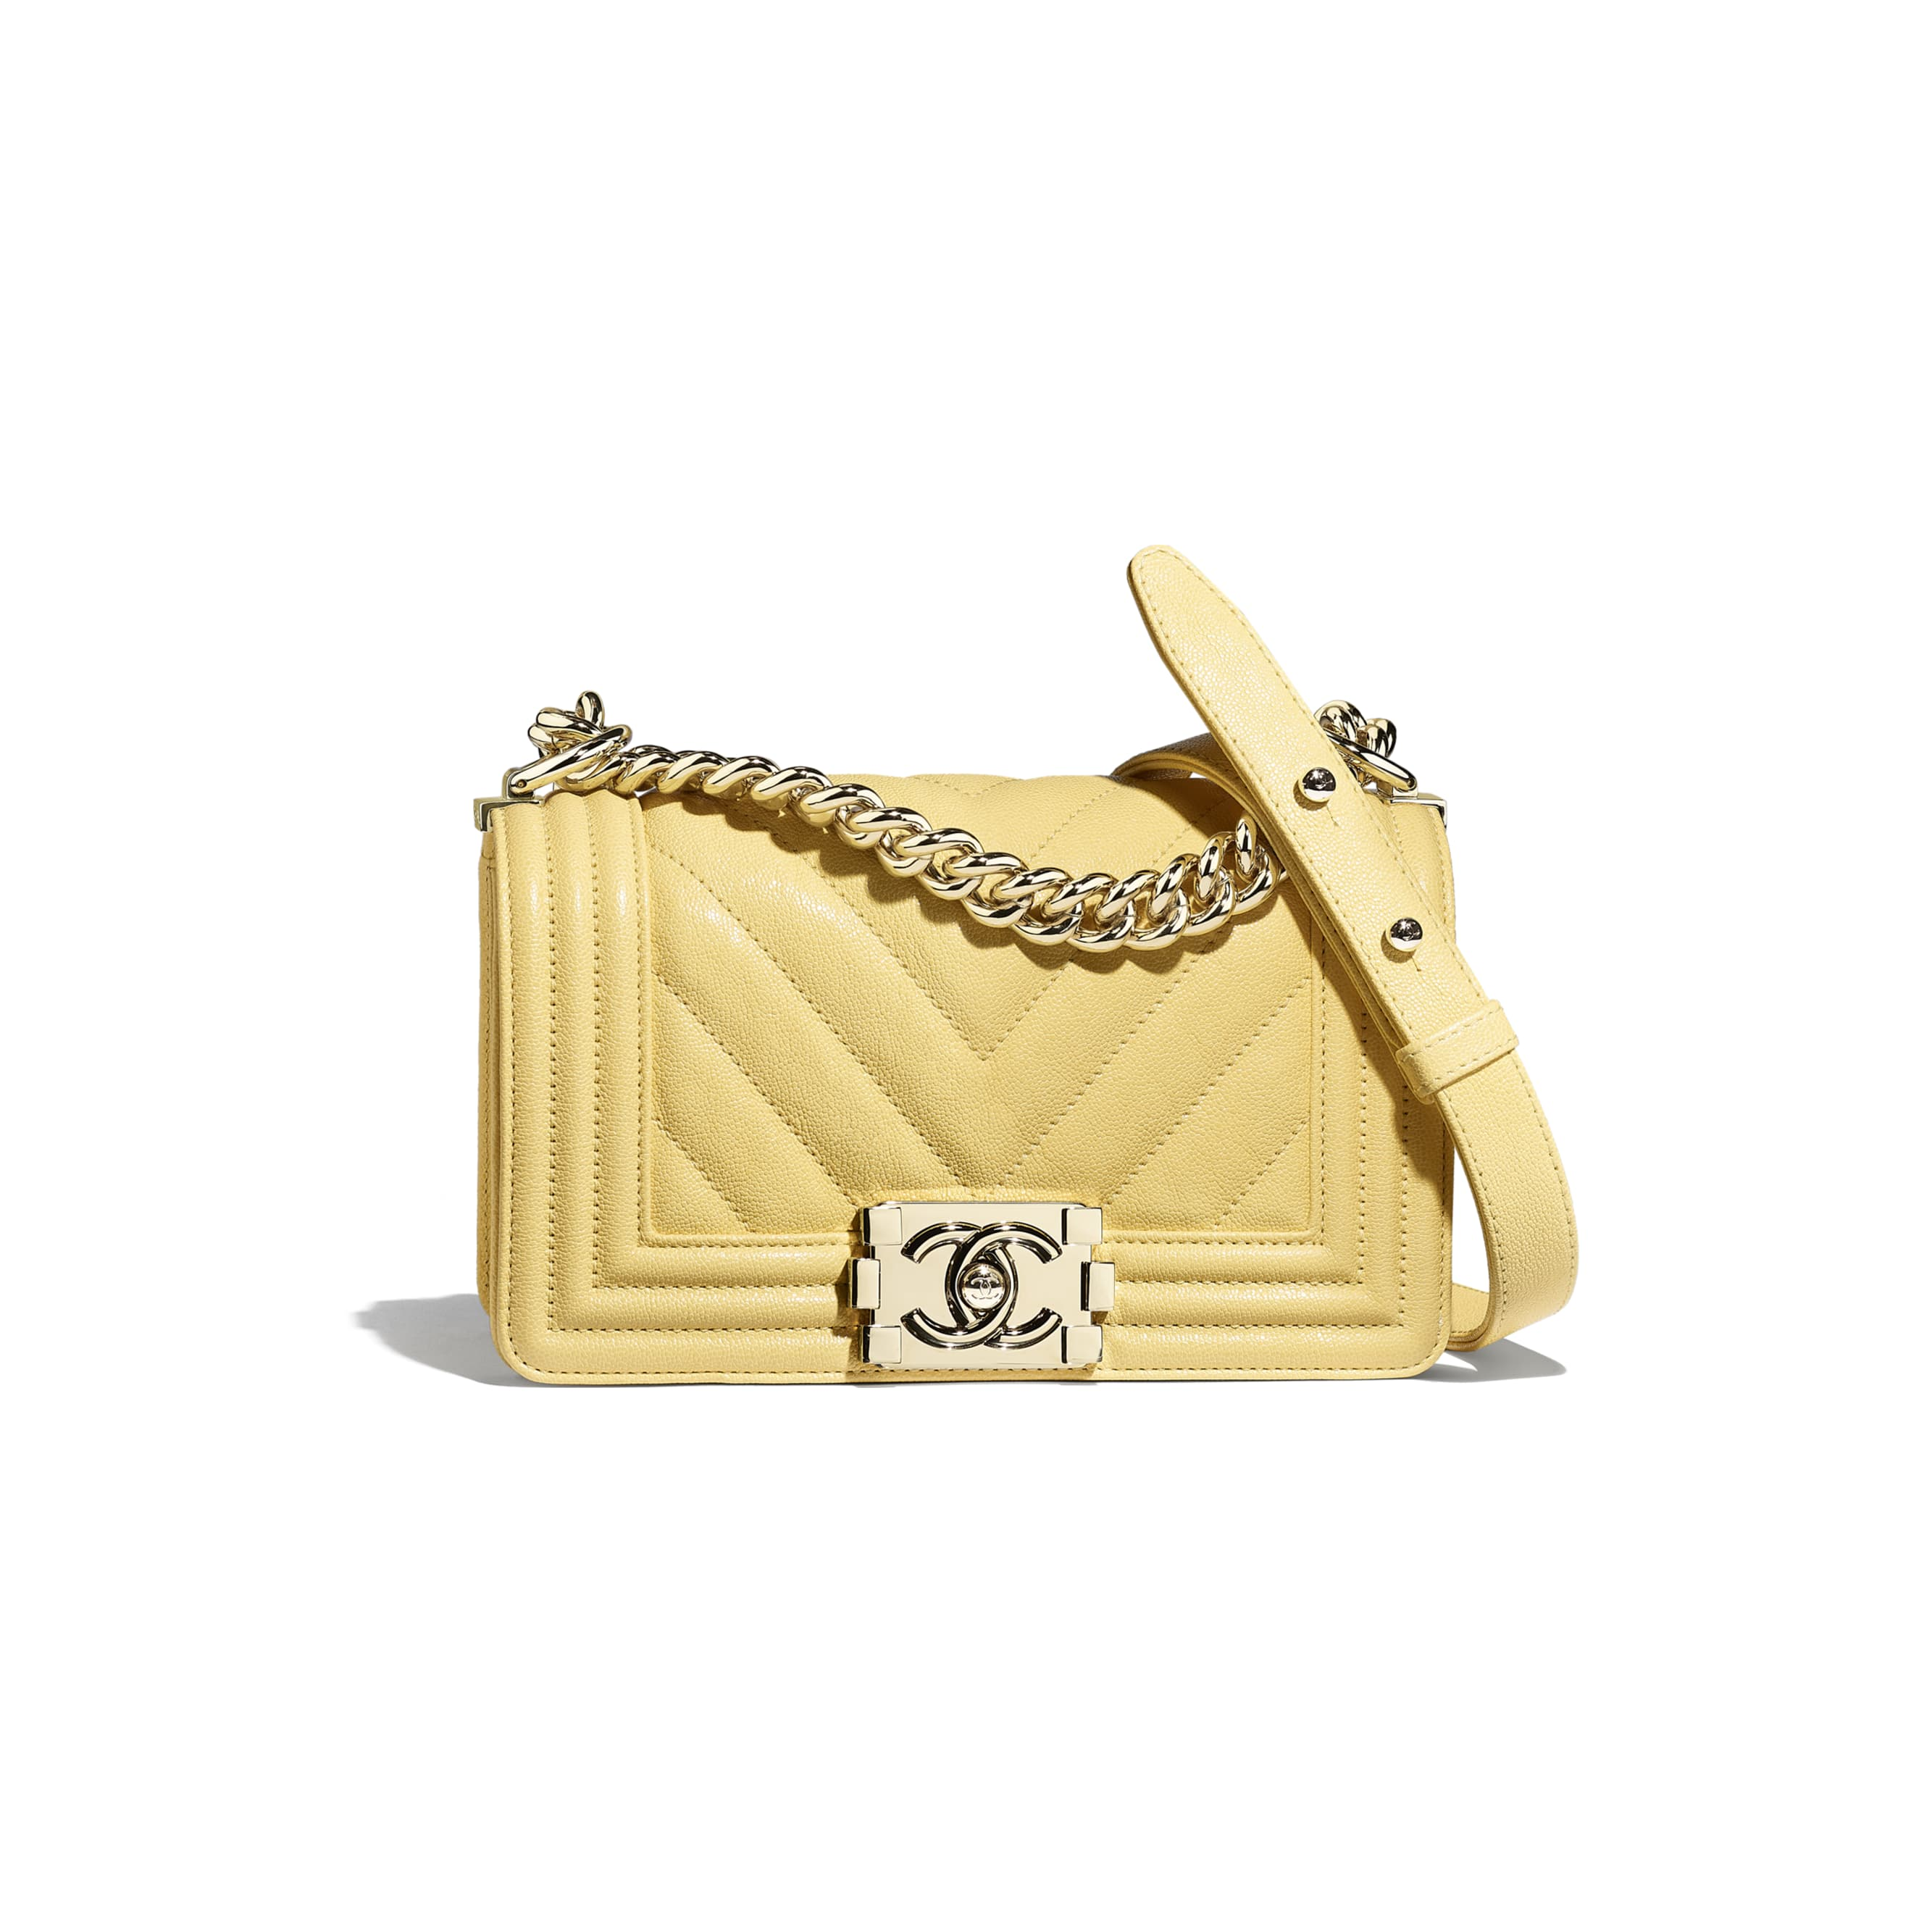 Small BOY CHANEL Handbag - Yellow - Grained Calfskin & Gold-Tone Metal - Default view - see standard sized version